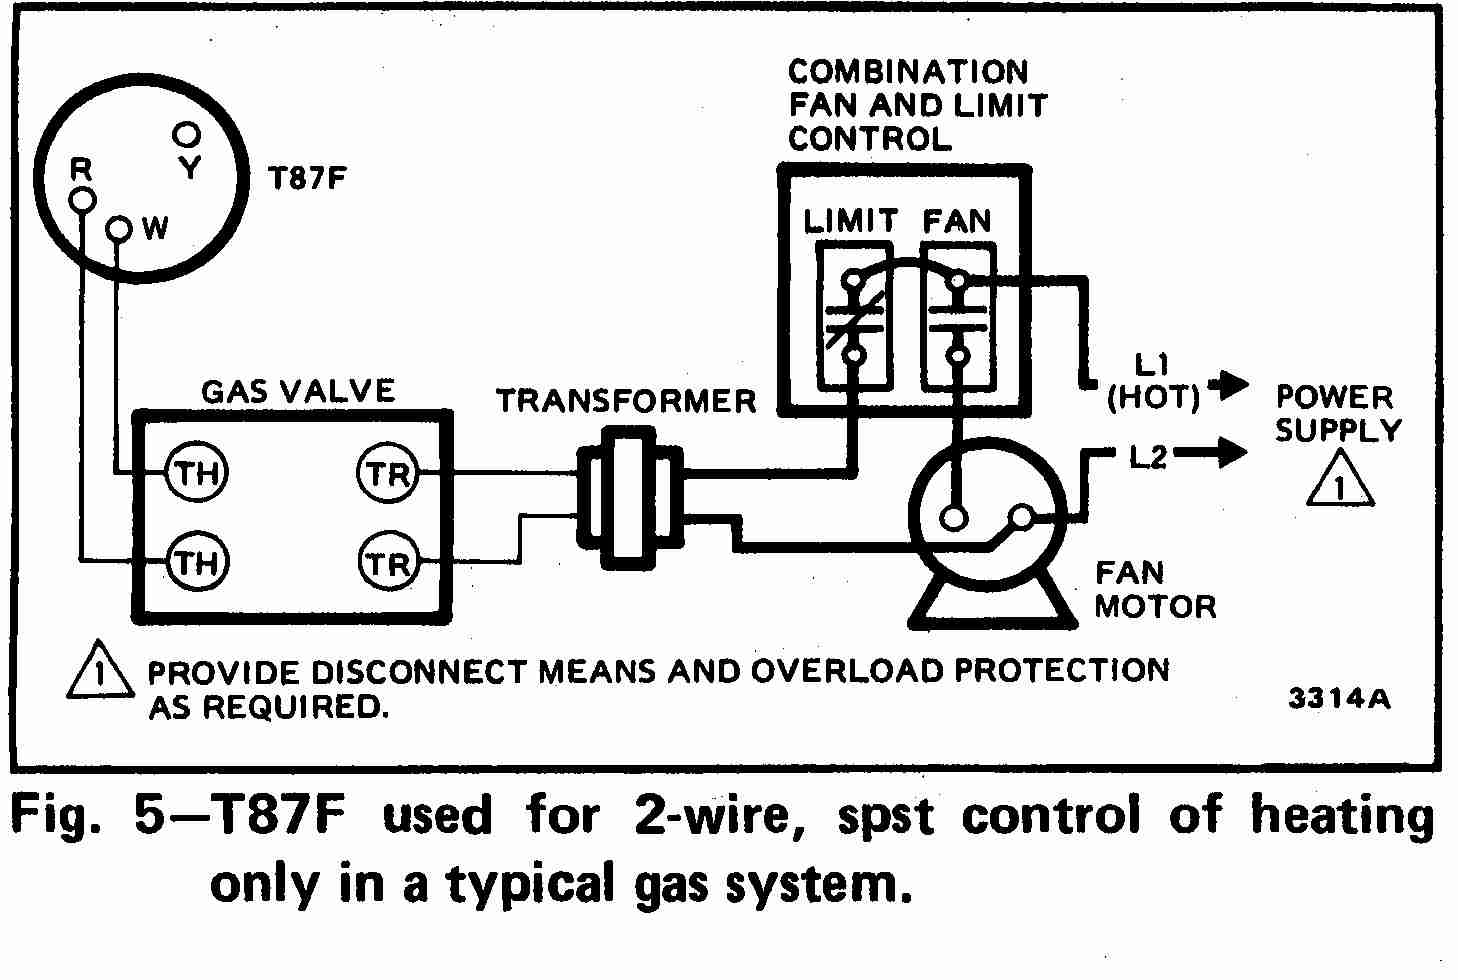 V8043f1036 Honeywell 2 Zone Wiring Diagram as well Vivint Thermostat Wiring Diagram moreover Wall Furnace Gas Valve Wiring Diagram furthermore Post intertherm Furnace Wiring Diagram 320810 besides Thermostat Diagrams. on wire a white rodgers thermostat